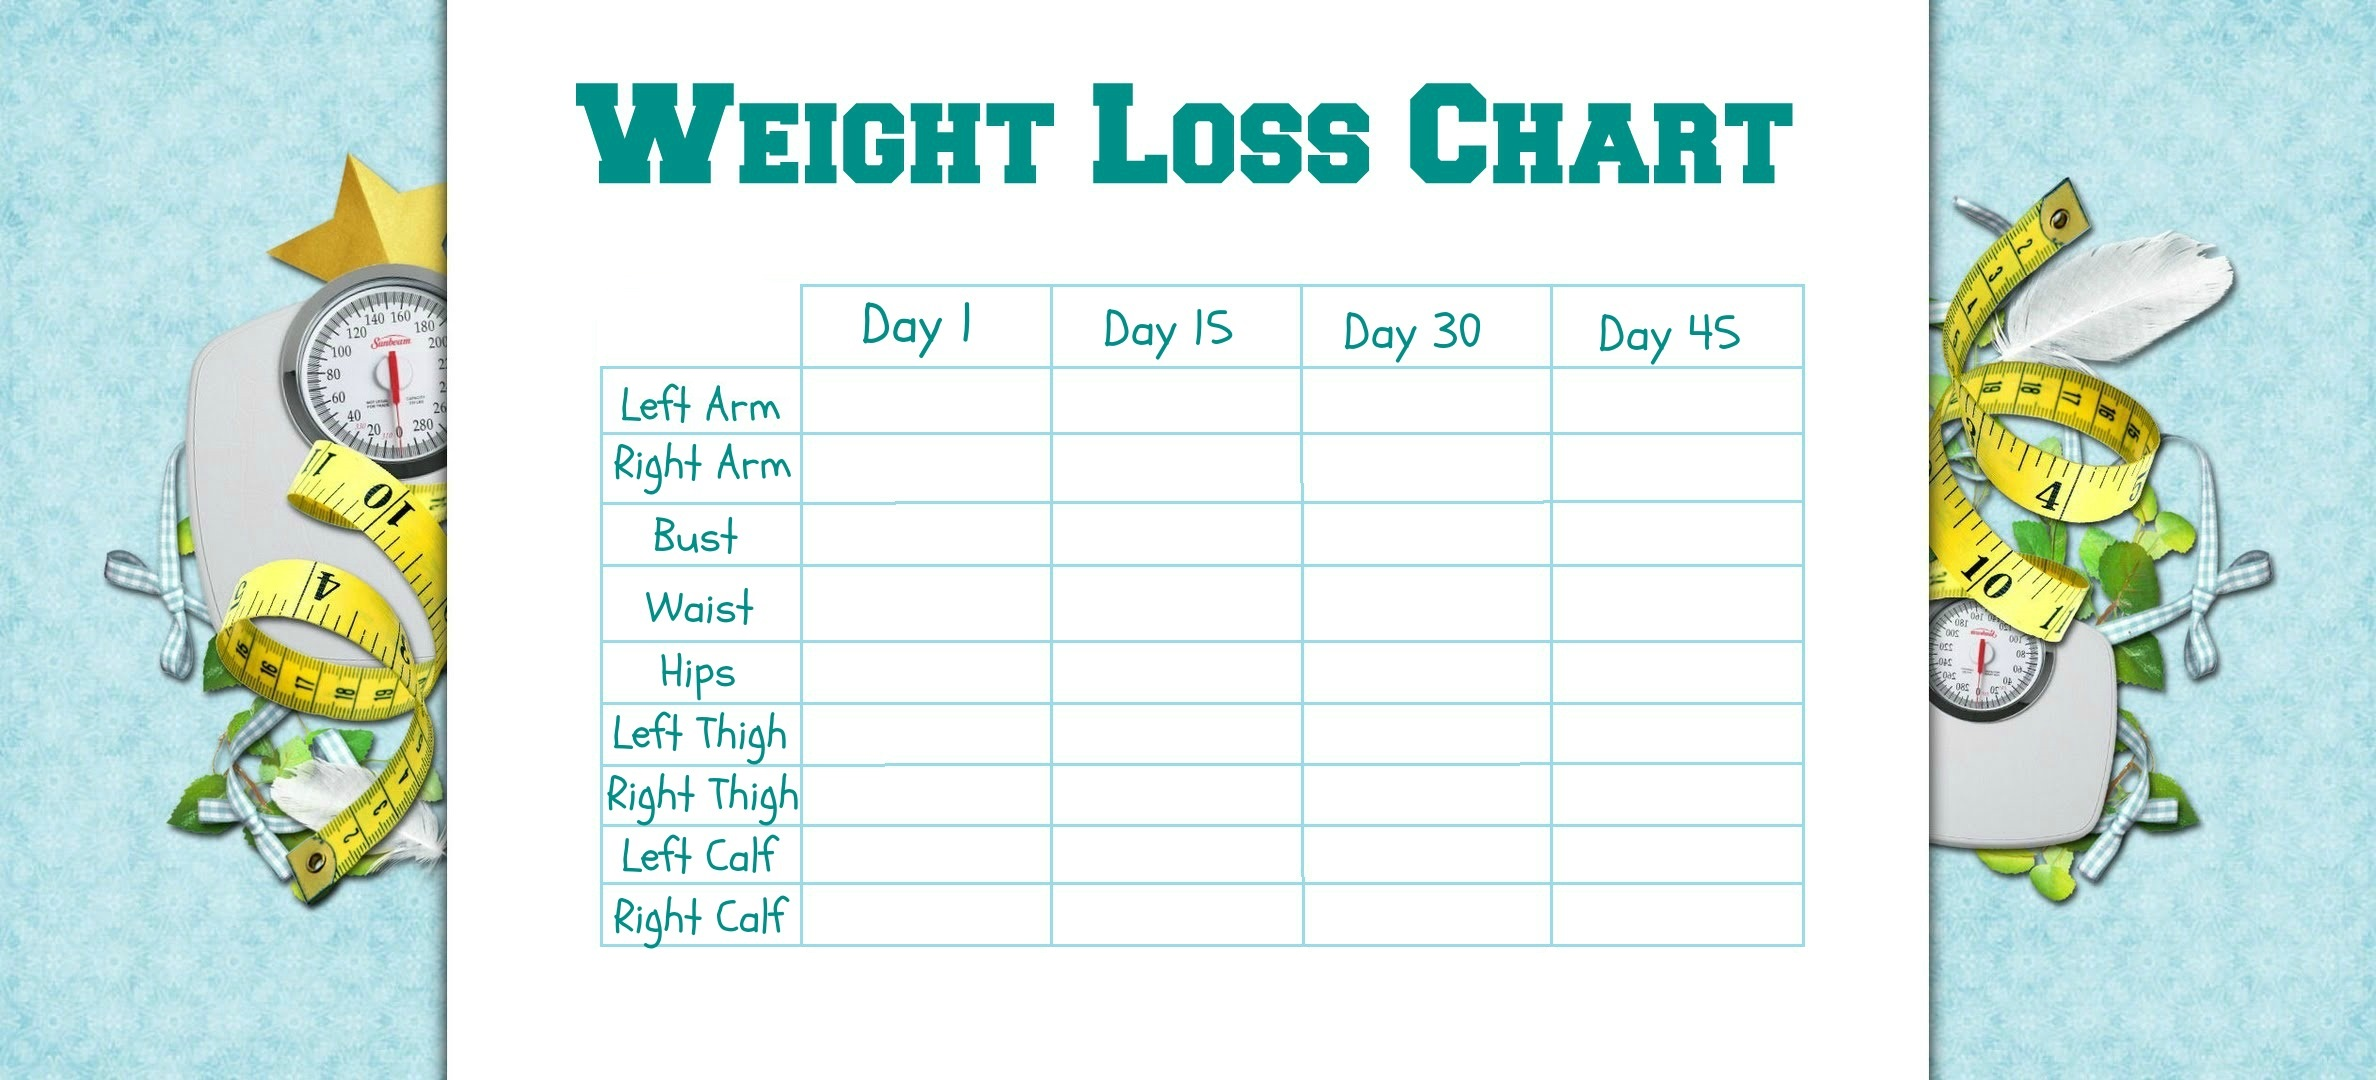 weekly weight loss chart template - new years resolutions an example the fit geek girl